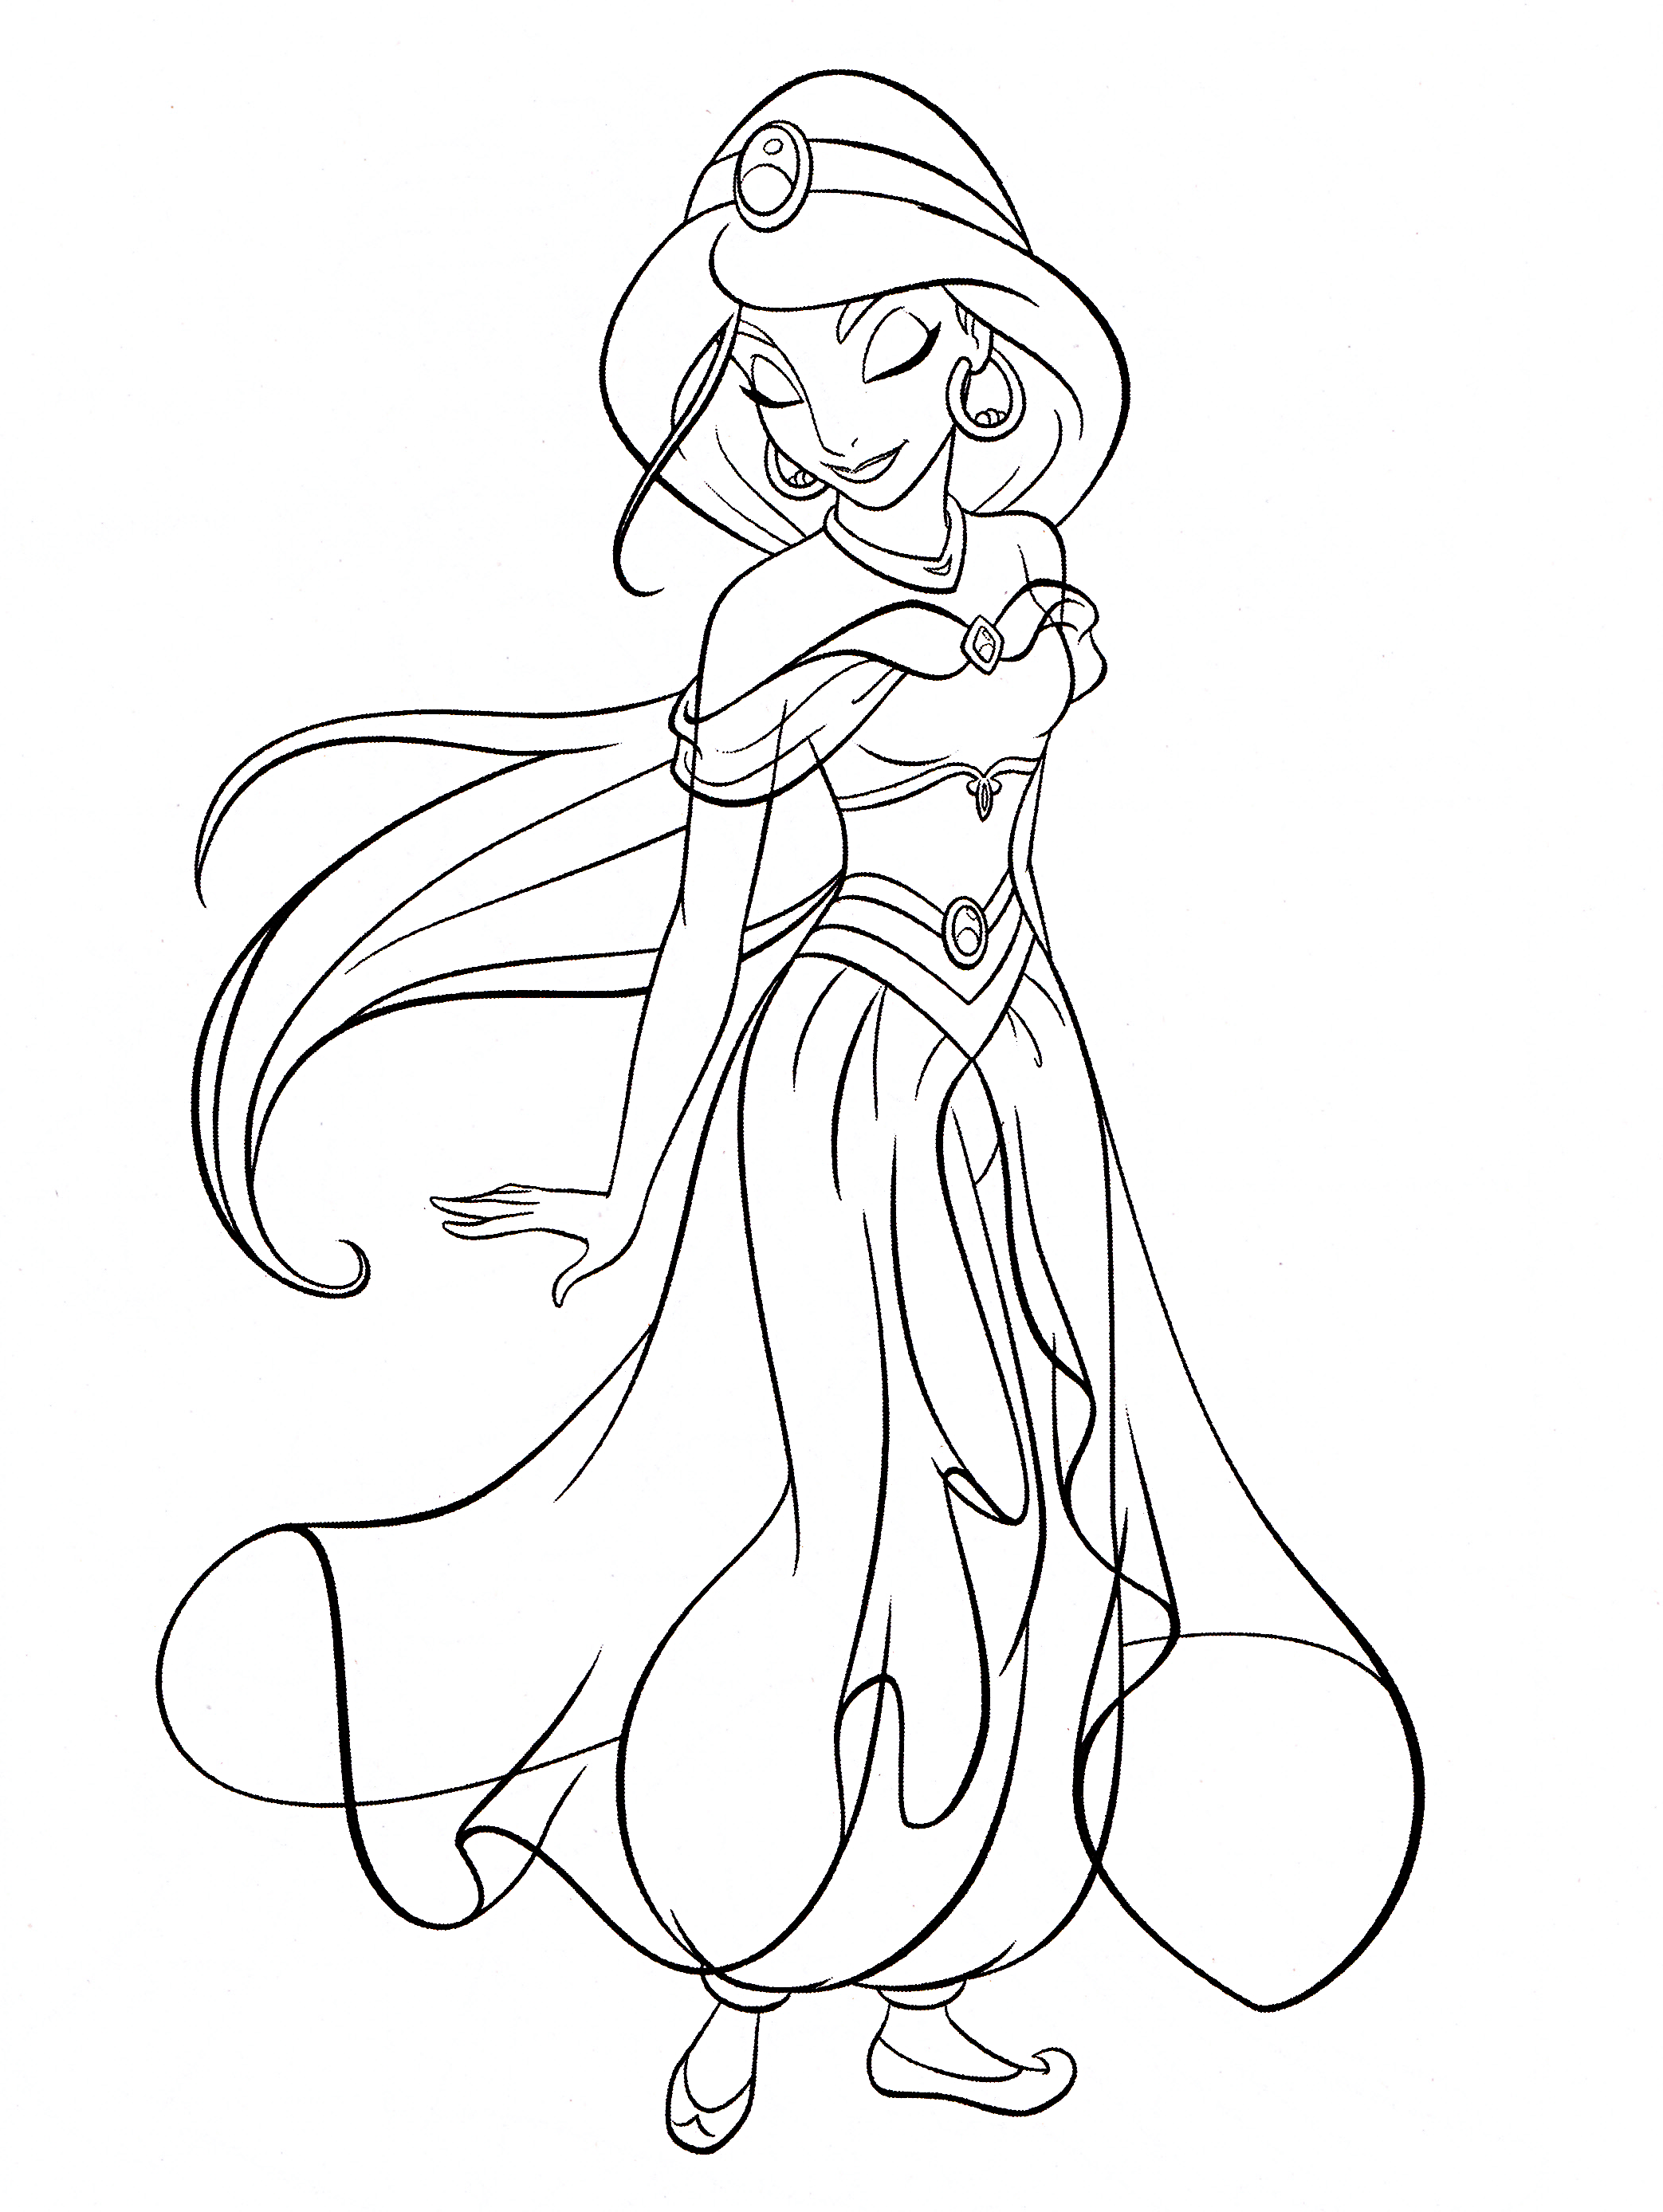 Photo of Walt Disney Coloring Pages - Princess Jasmine for fans of ...